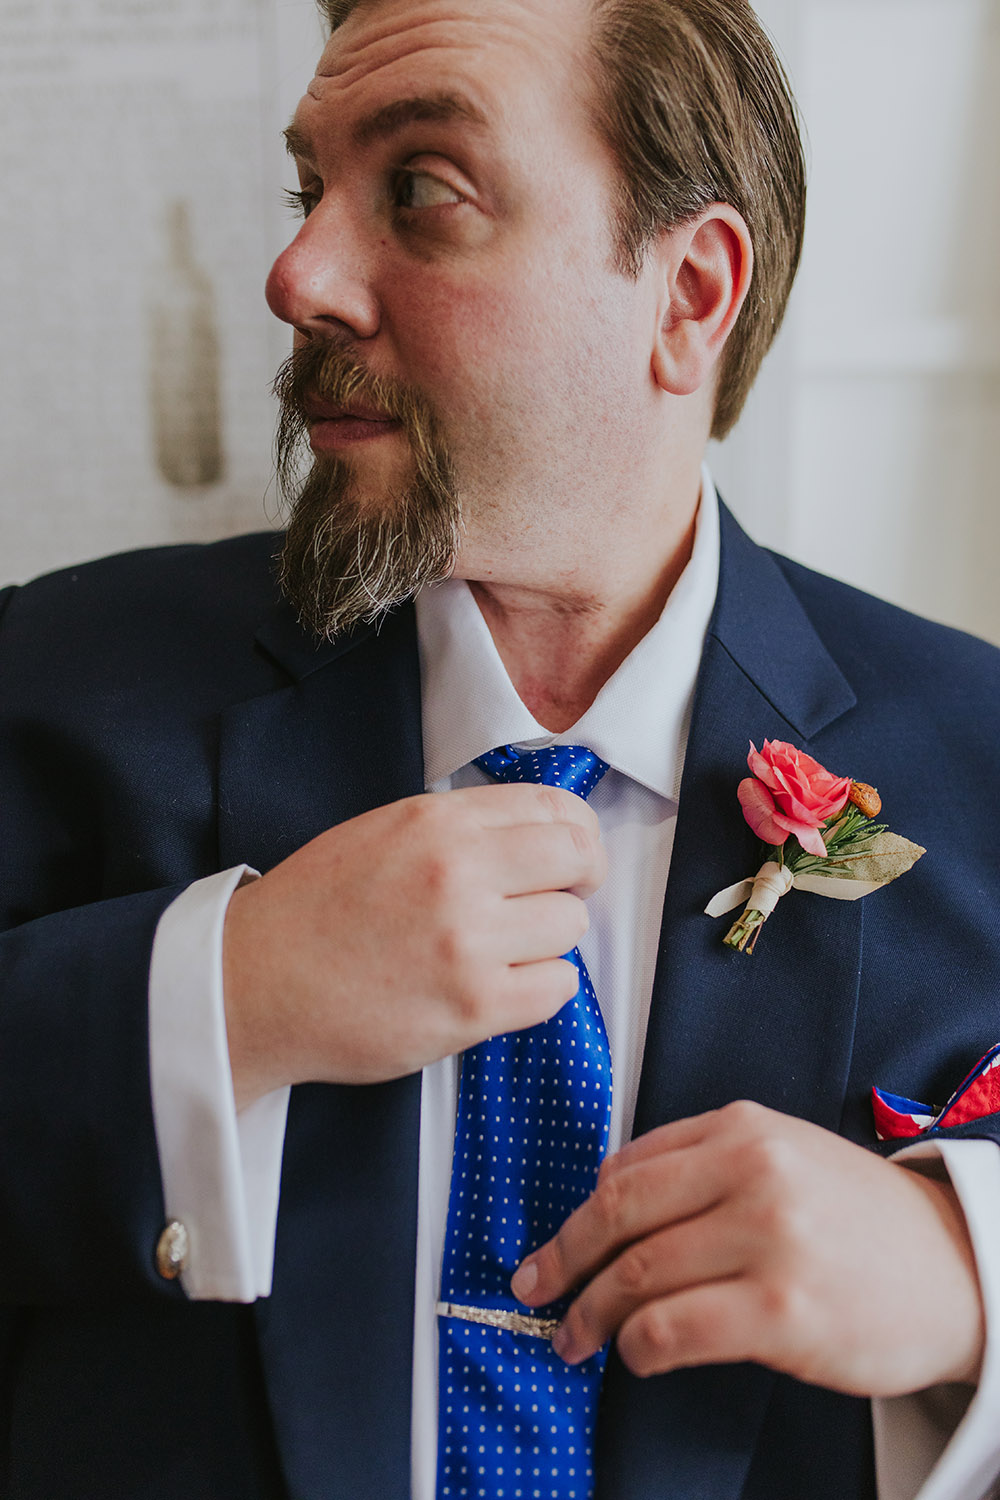 Peter looks dapper in his navy suit from British Custom Tailors. A blue tie and red and blue pocket square add a pop of color and complement his boutonniere. Photo: Ashley Biltz